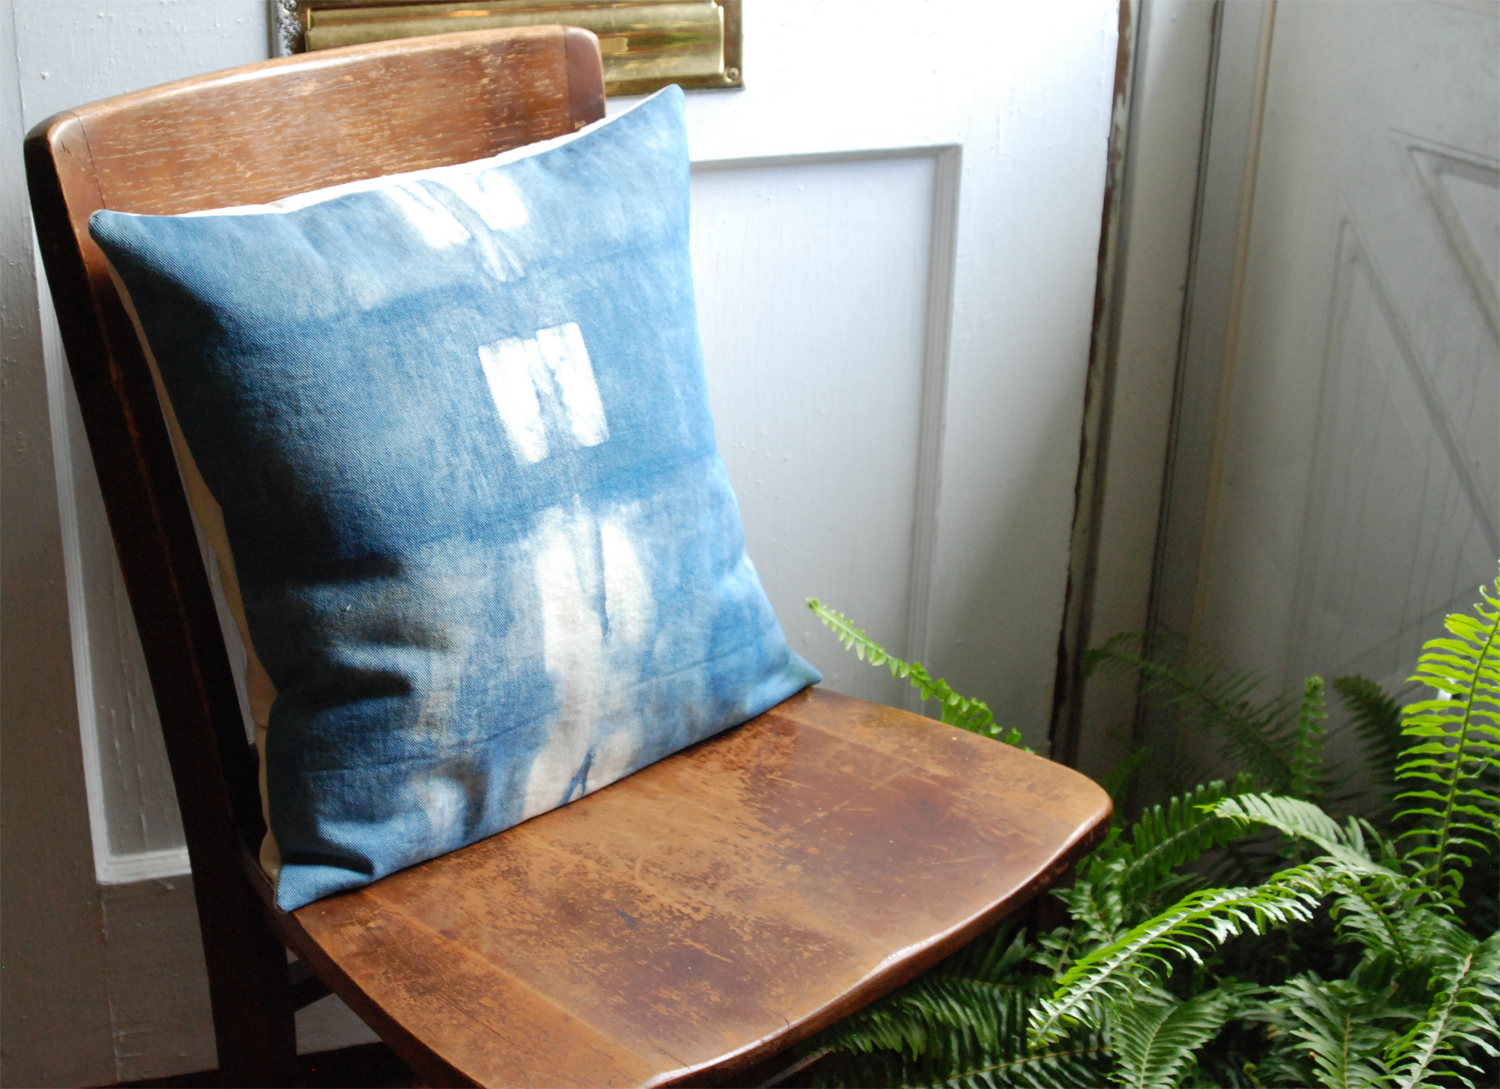 Win a Redden Good Wikkelen Pillow - The Ultimate Craft Day Giveaway | Spoonflower Blog